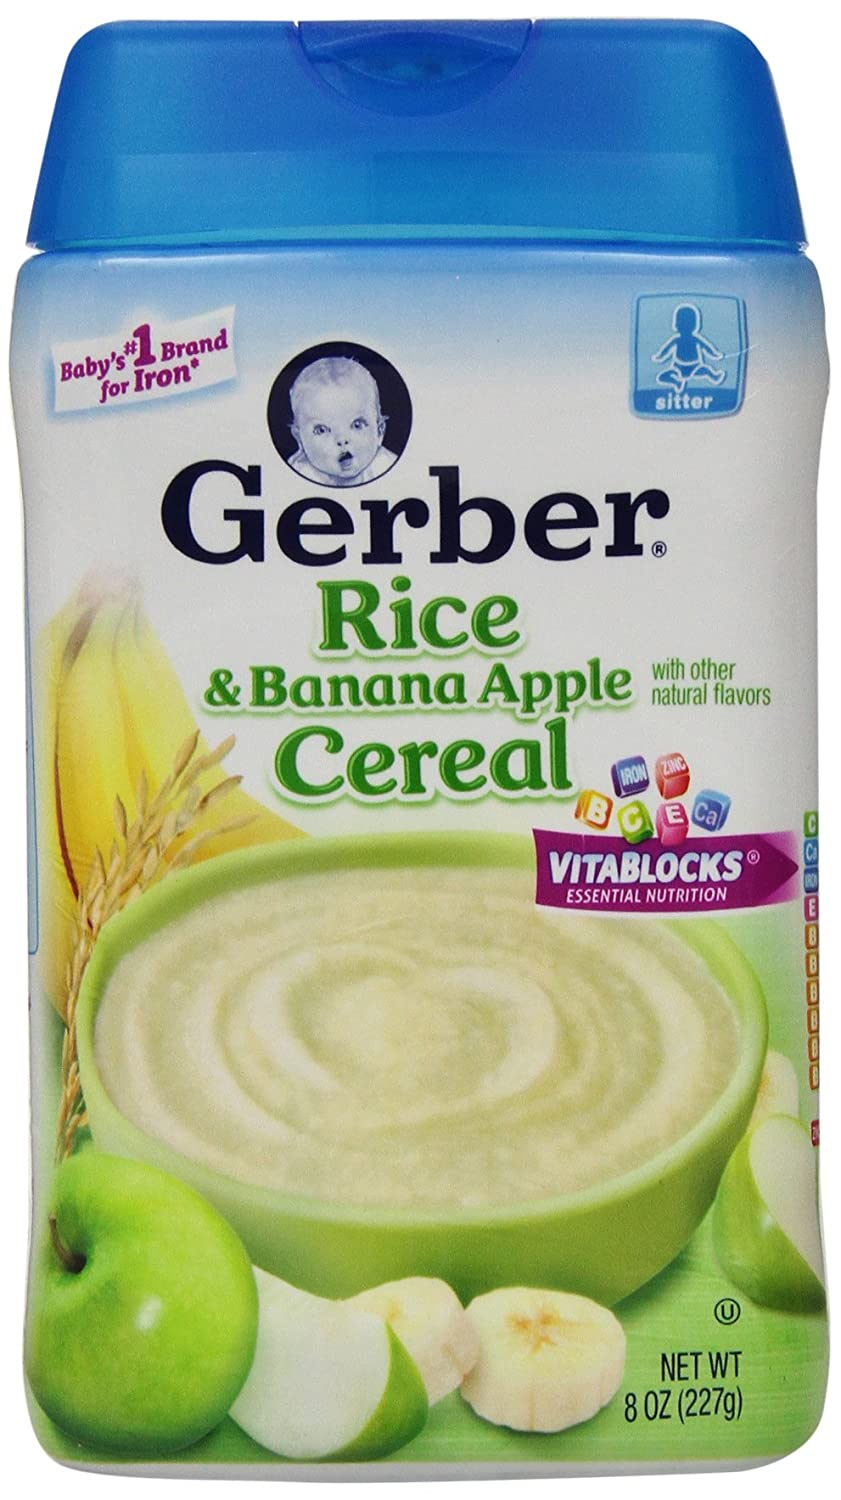 Gerber Baby Cereal Rice, Banana Apple, 8 Ounce 07010